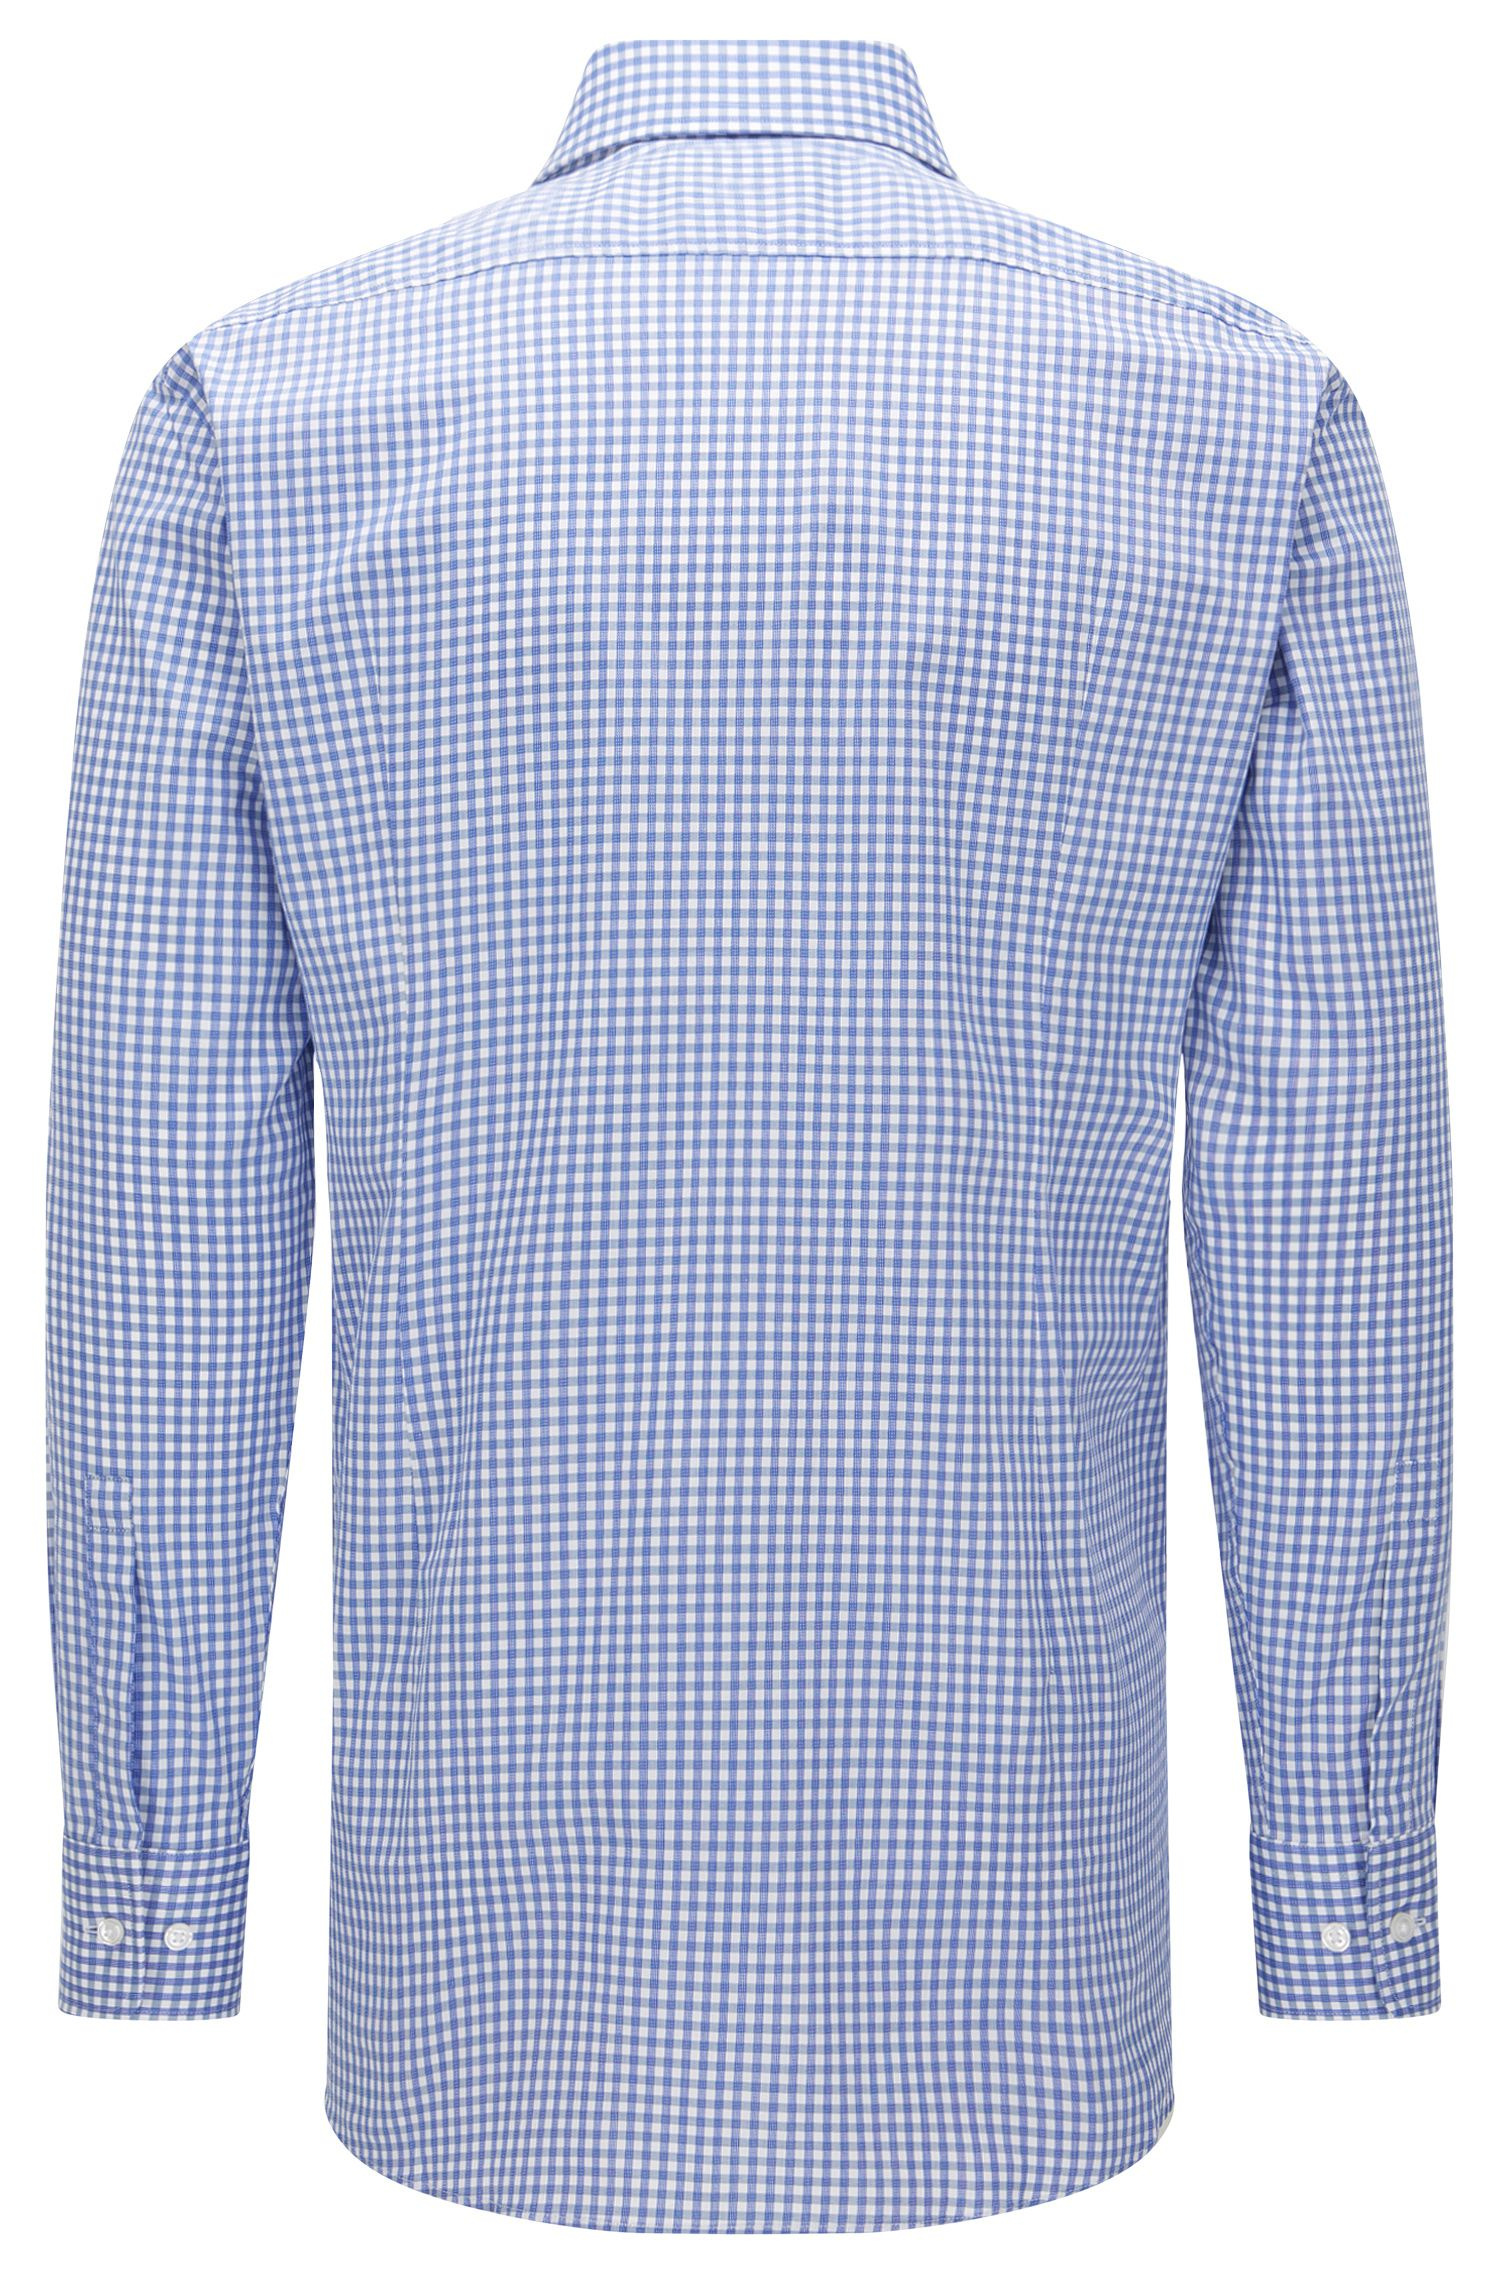 Sheperd's Check Cotton Dress Shirt, Sharp Fit | Mark US